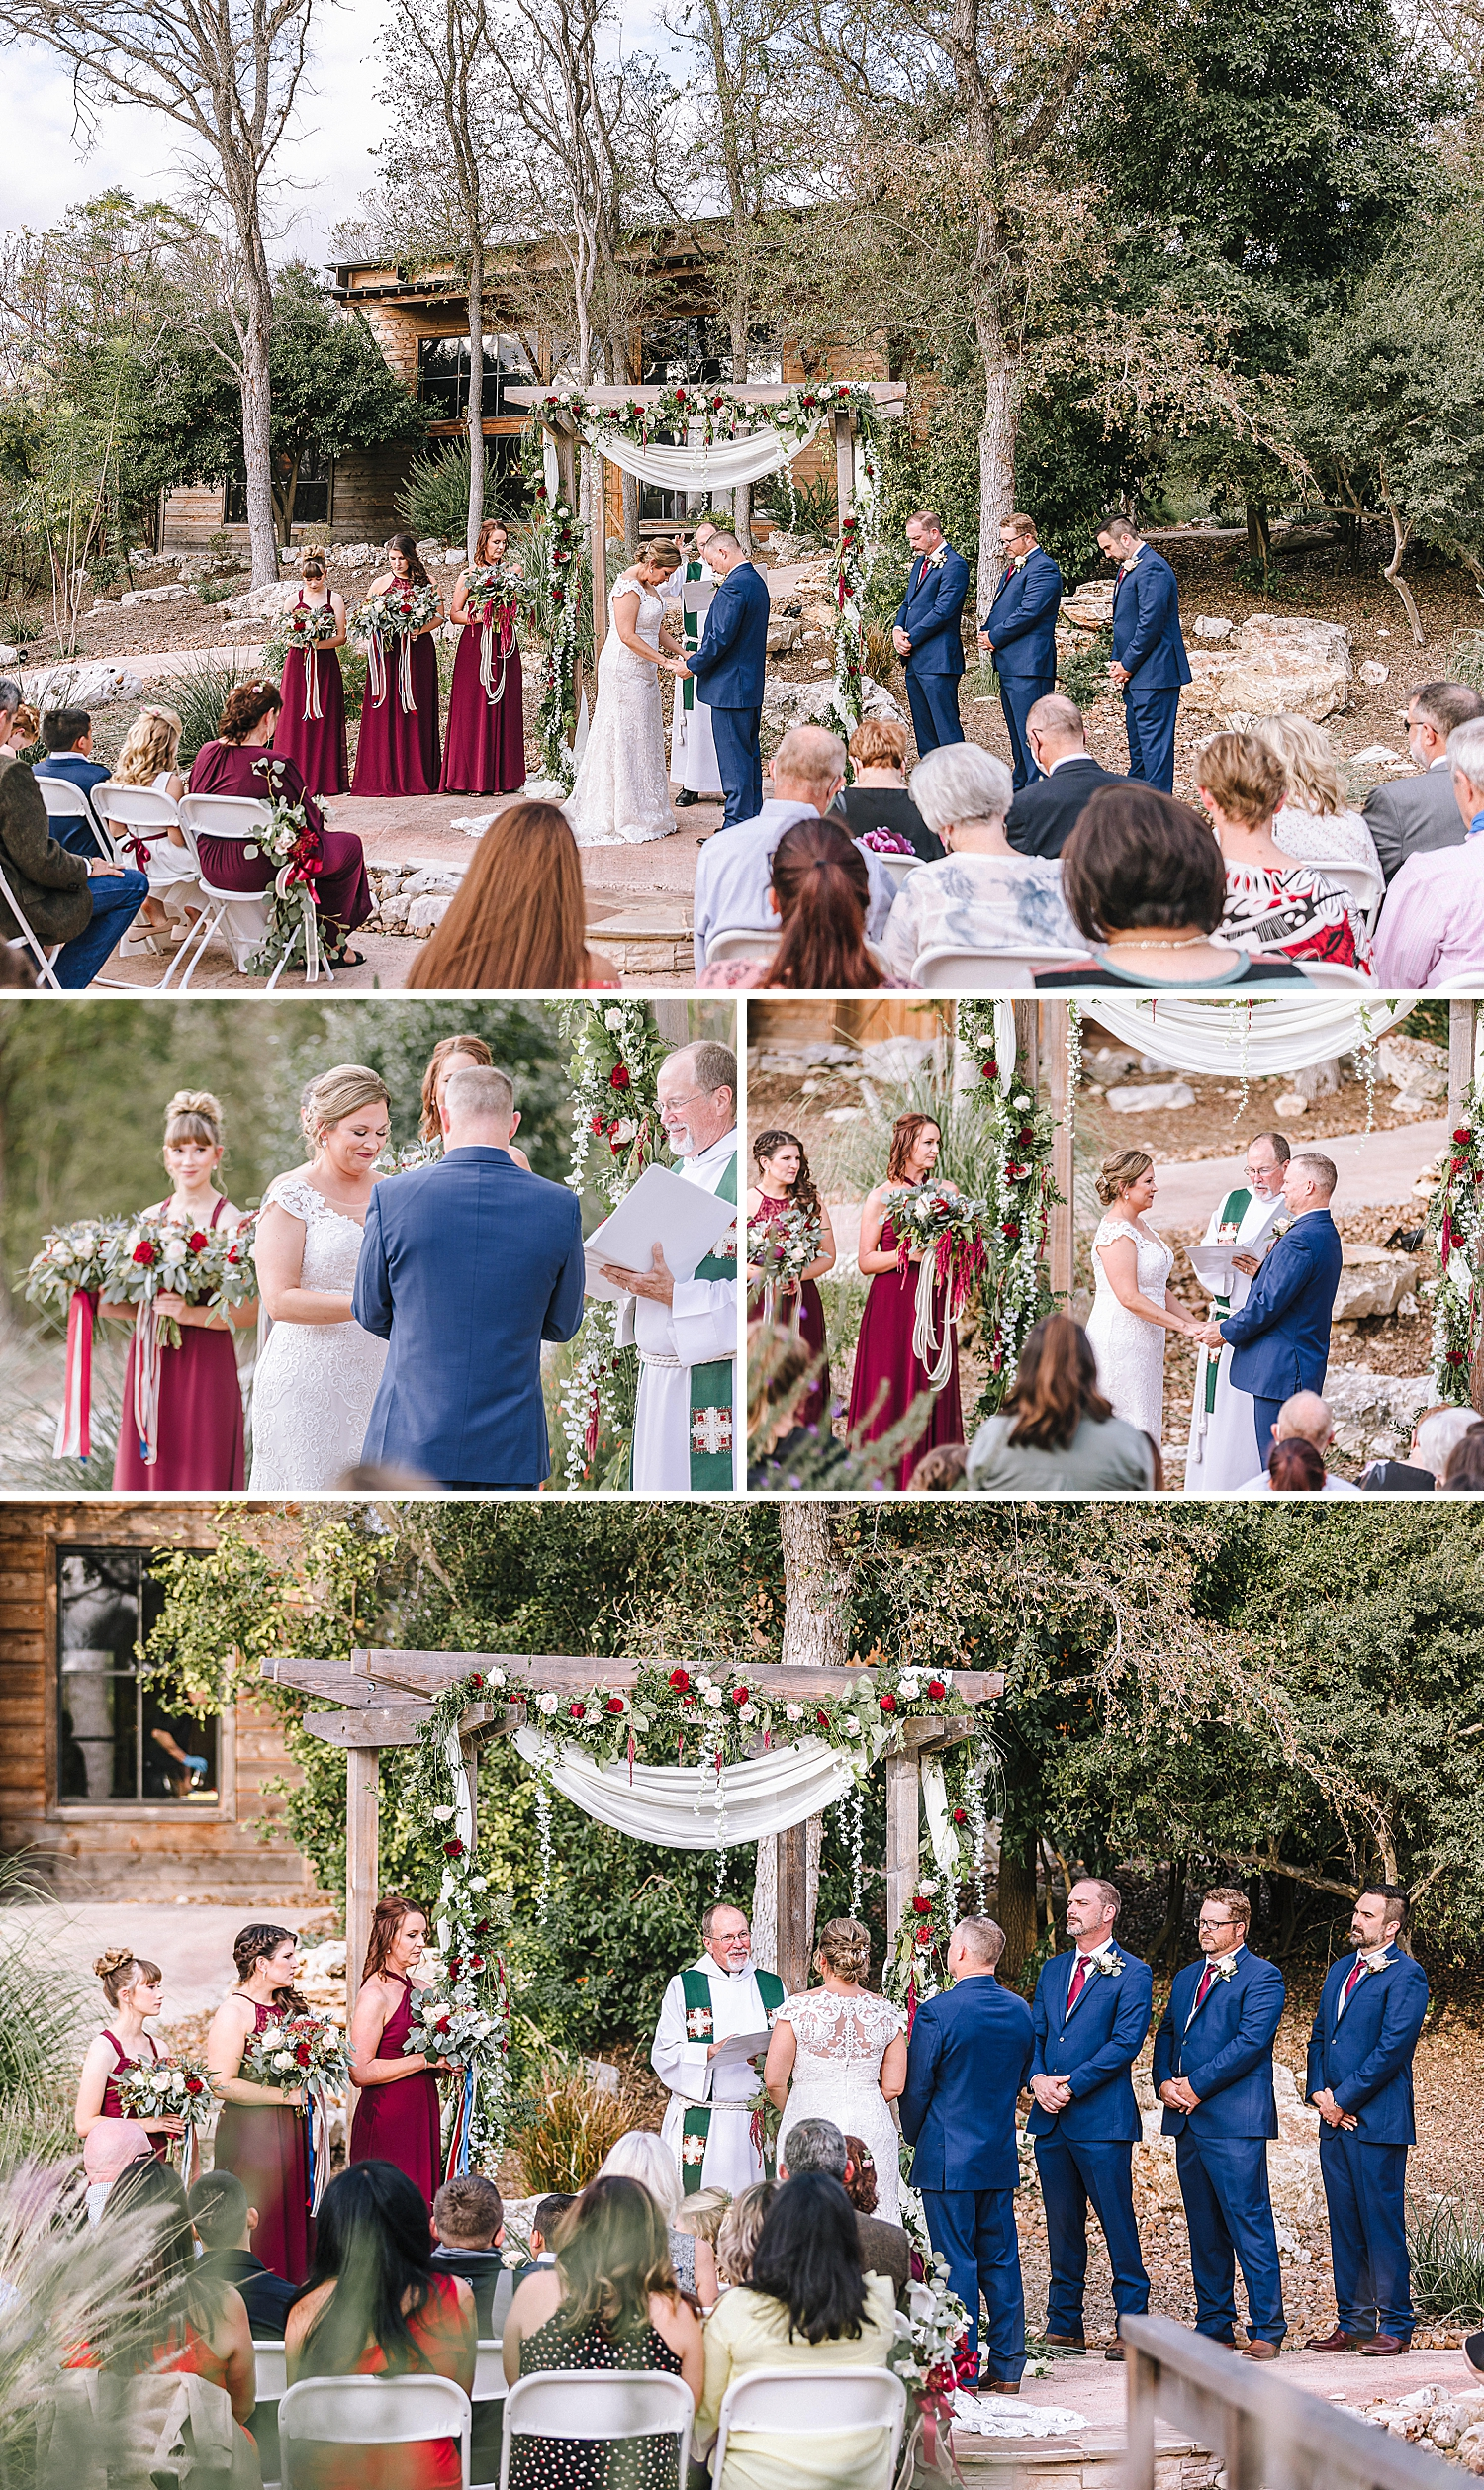 Geronimo-Oaks-Wedding-Venue-Seguin-Texas-Elegant-Navy-Burgundy-Wedding-Carly-Barton-Photography_0032.jpg